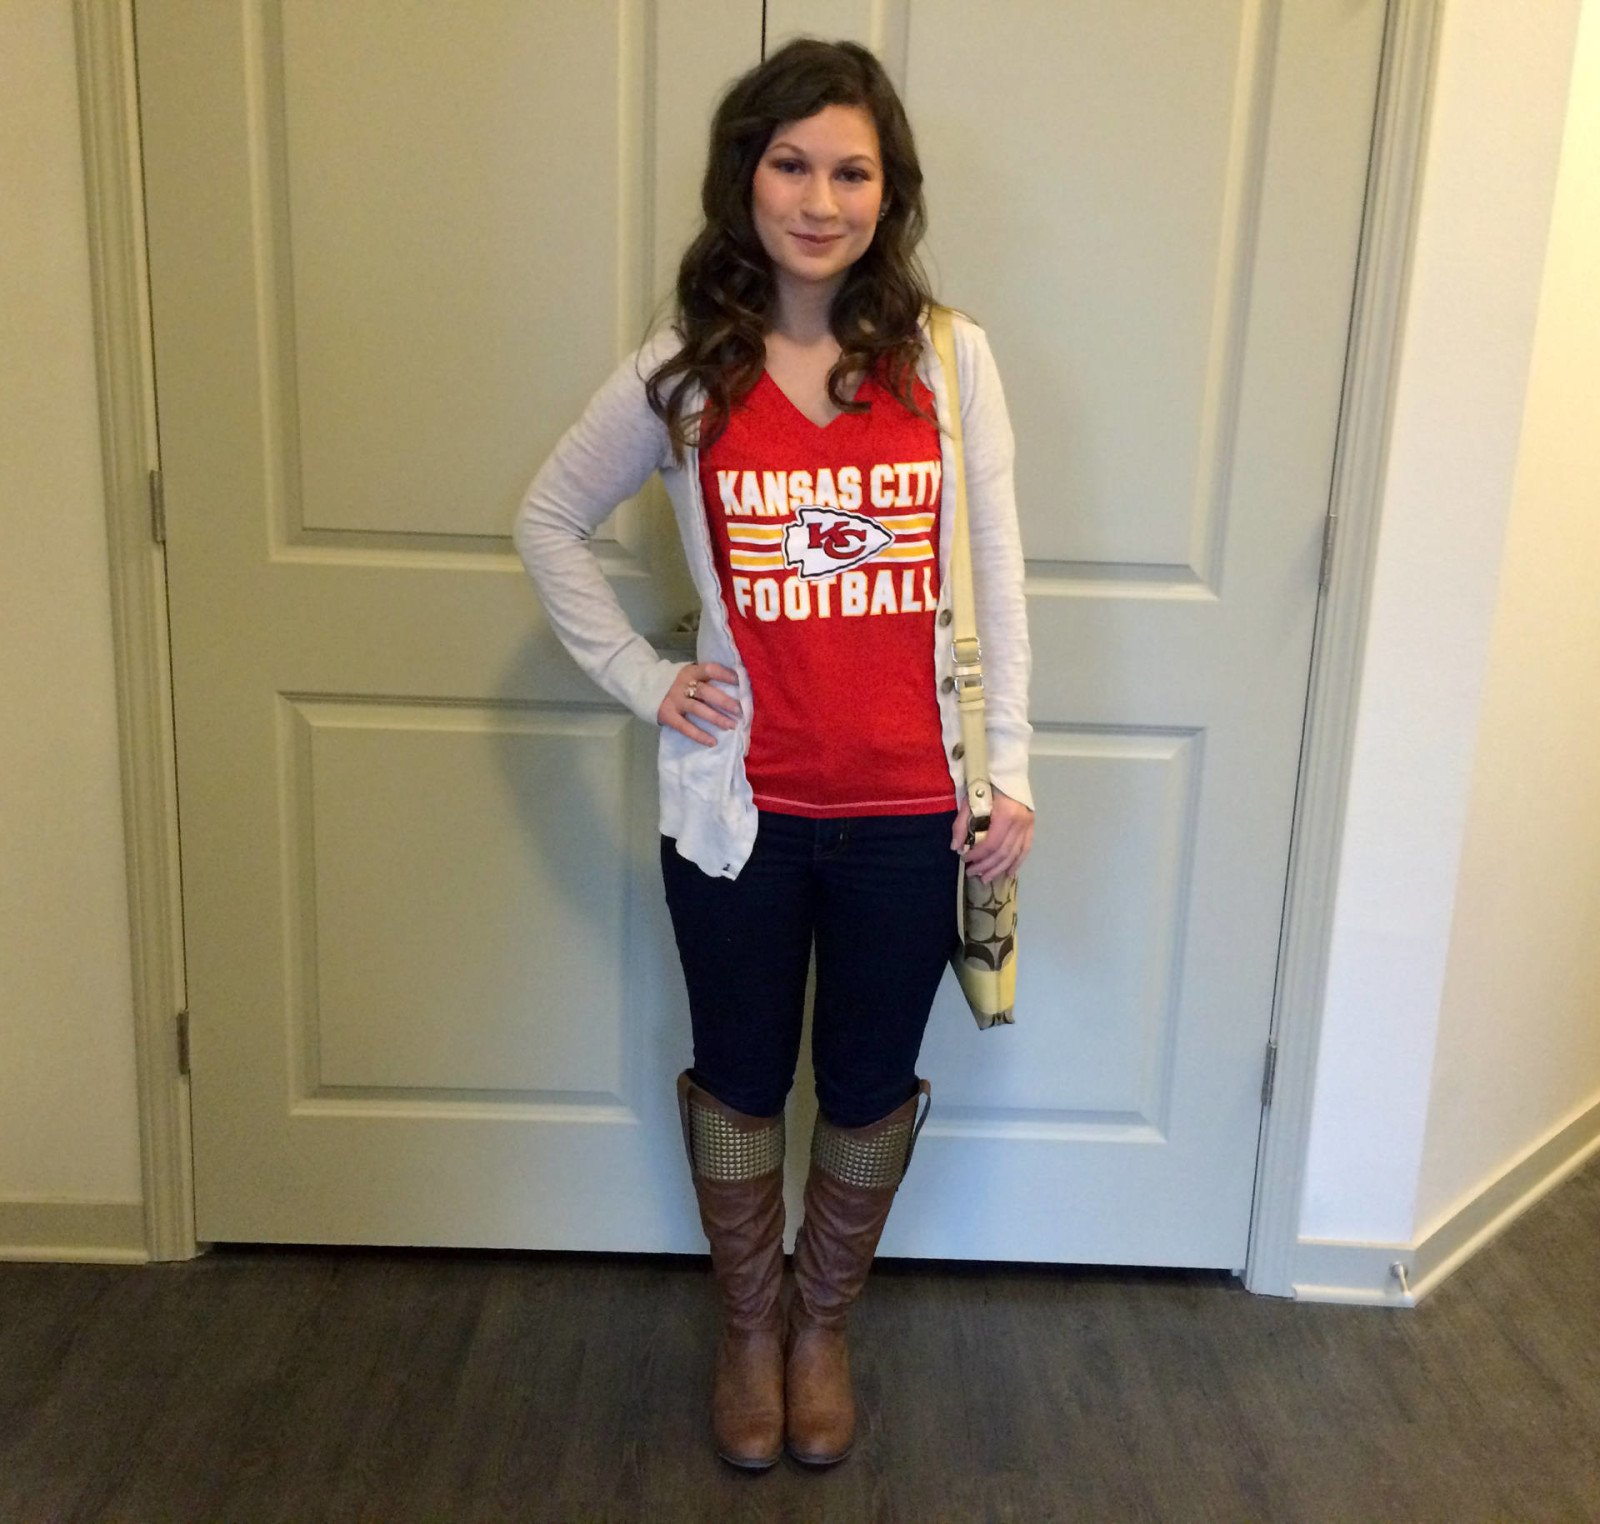 Chiefs GameDay Outfit